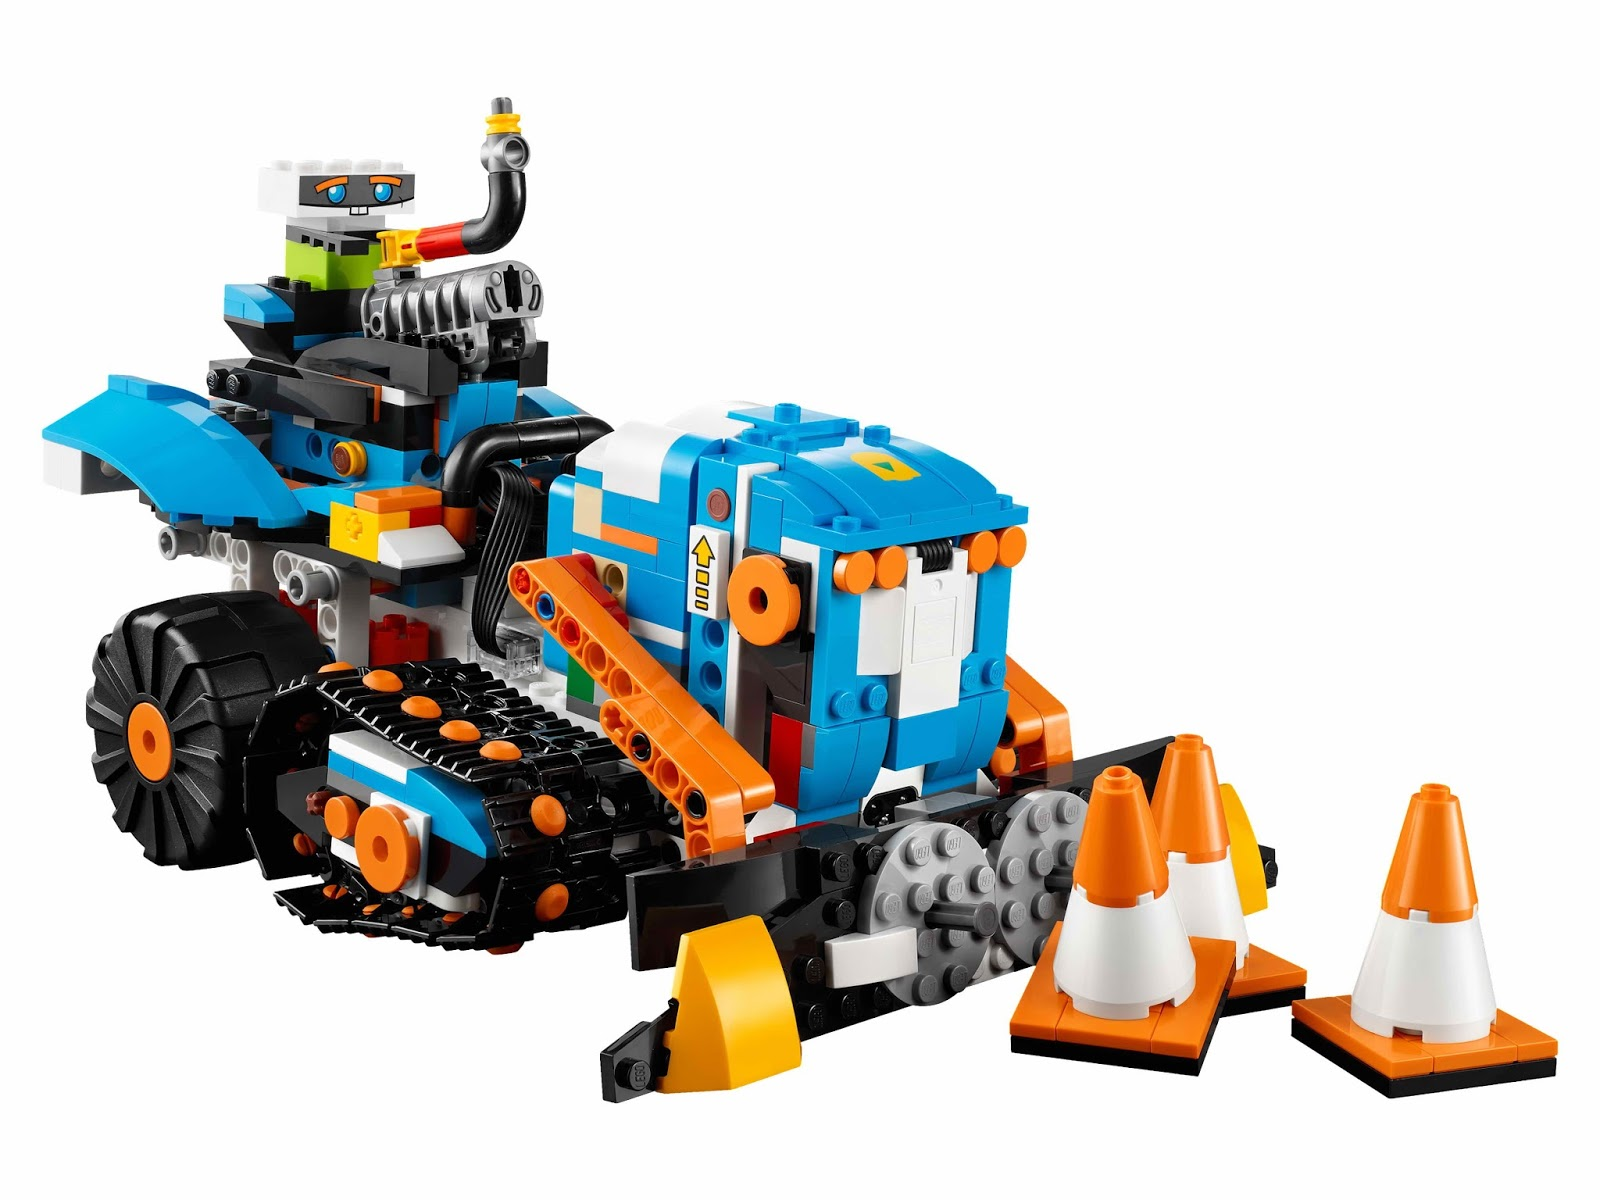 LEGO gosSIP: 070617 LEGO Boost 17101 Creative Toolbox box ...